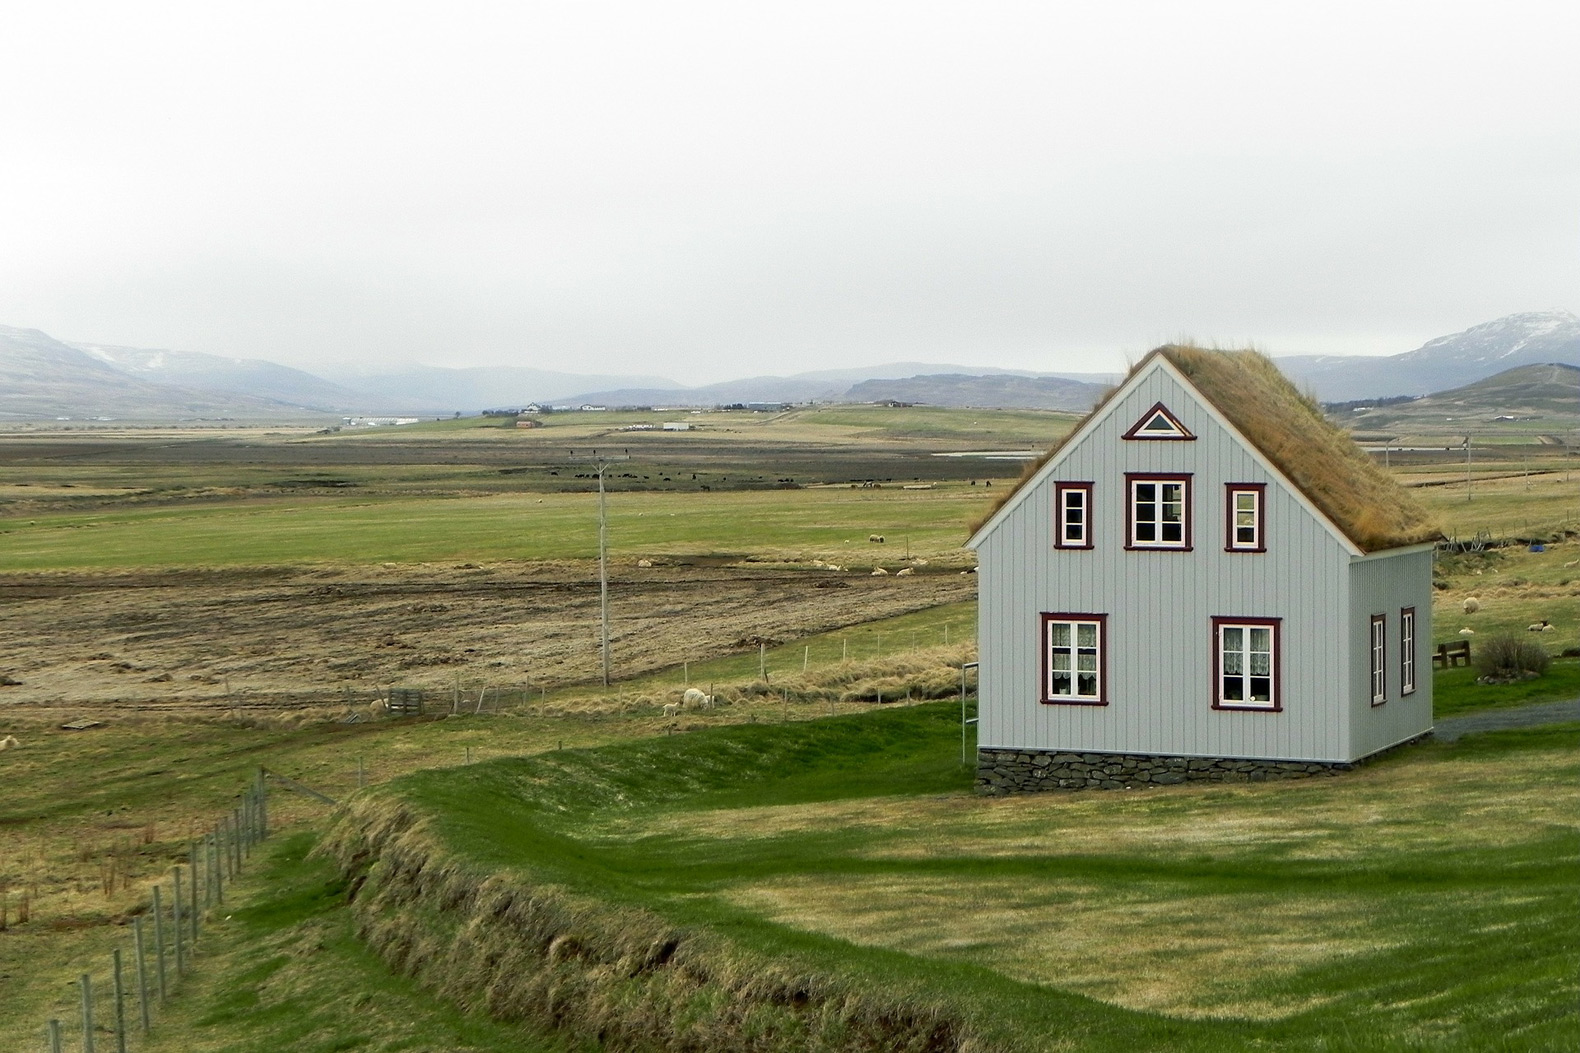 Green roofs can improve air quality inside buildings